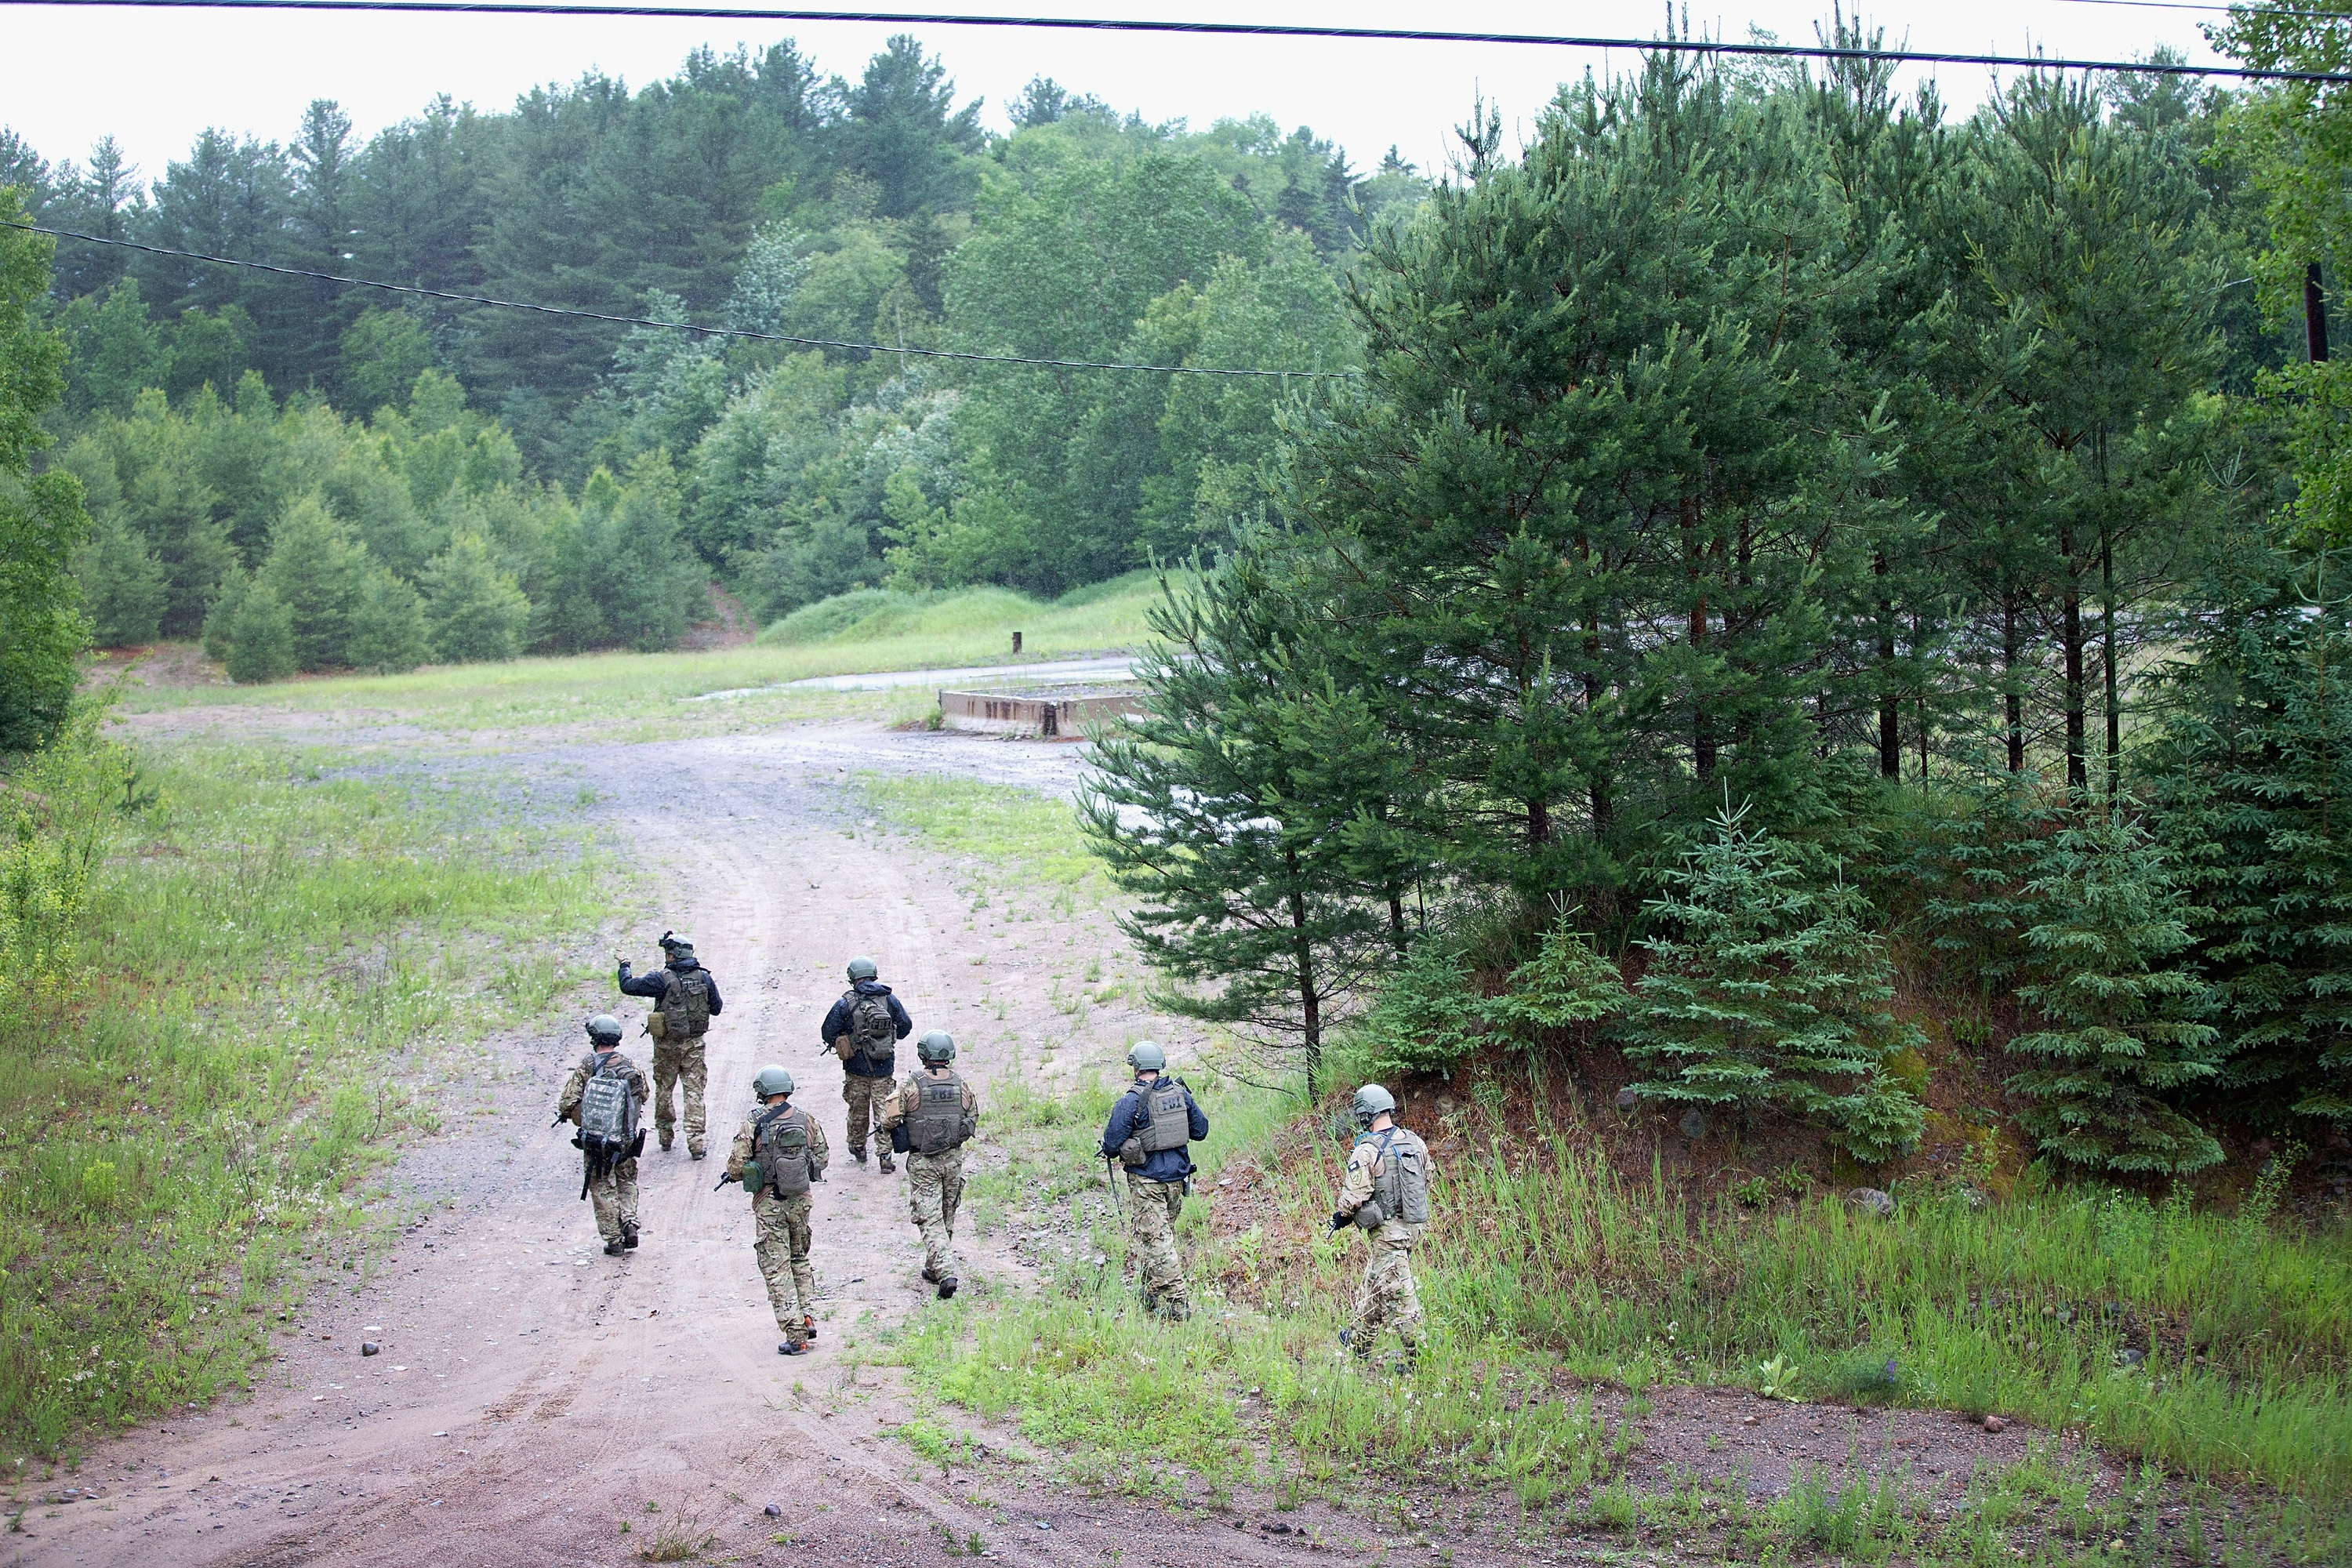 FBI agents conduct a search for convicted murderer  David Sweat on June 28, 2015 near Duane. On Friday Richard Matt, who escaped with Sweat, was shot and killed in the same area. (Getty Images)